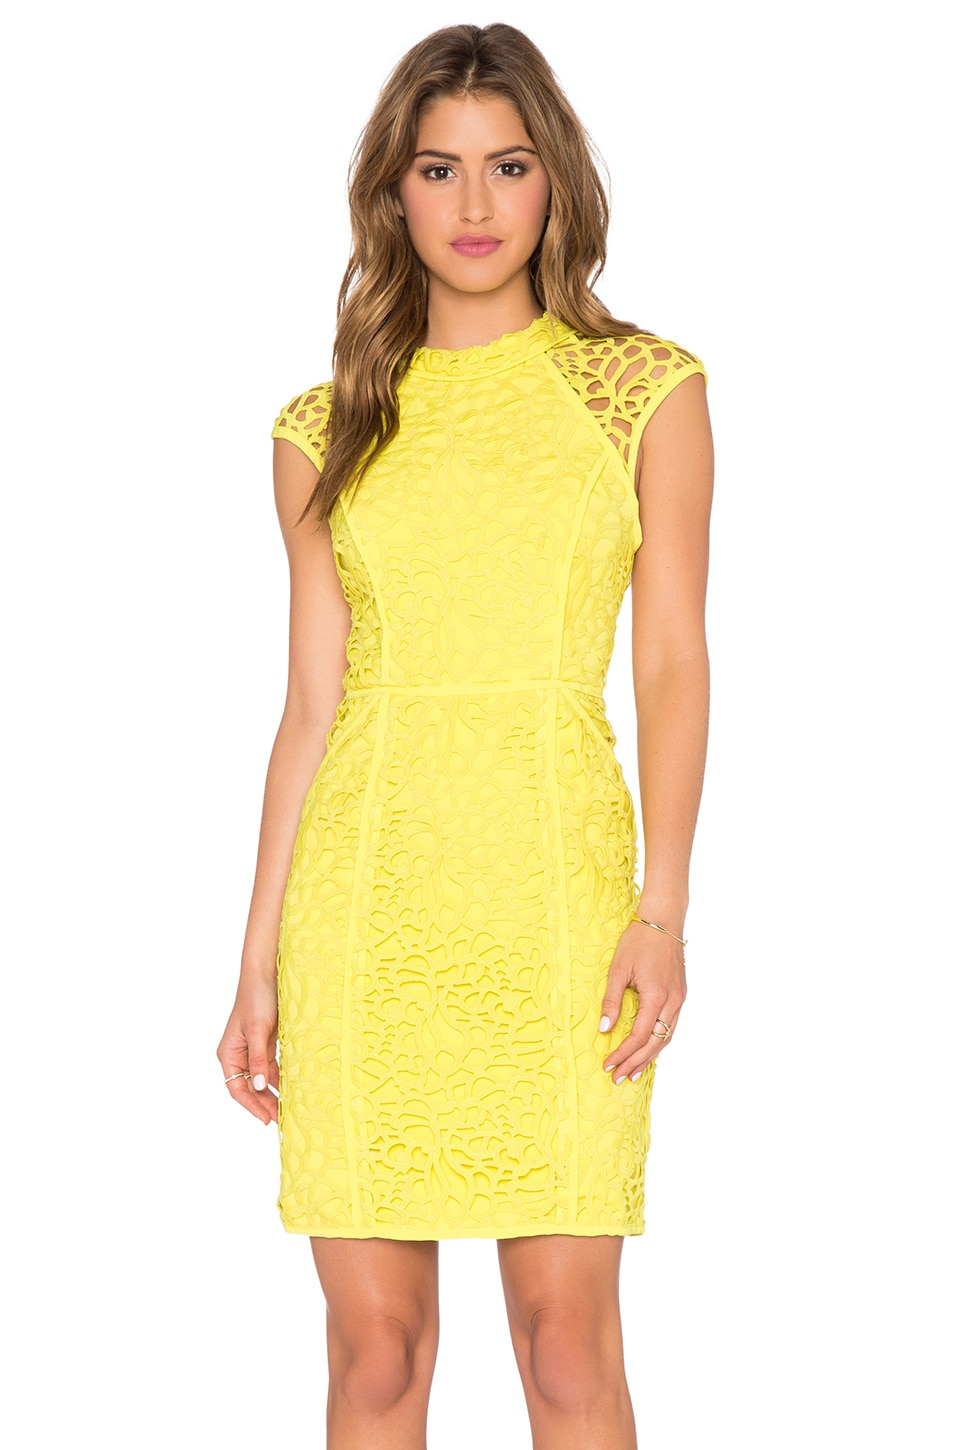 Lumier Heart Contours Lace Sheer Cap Sleeve Dress in Yellow